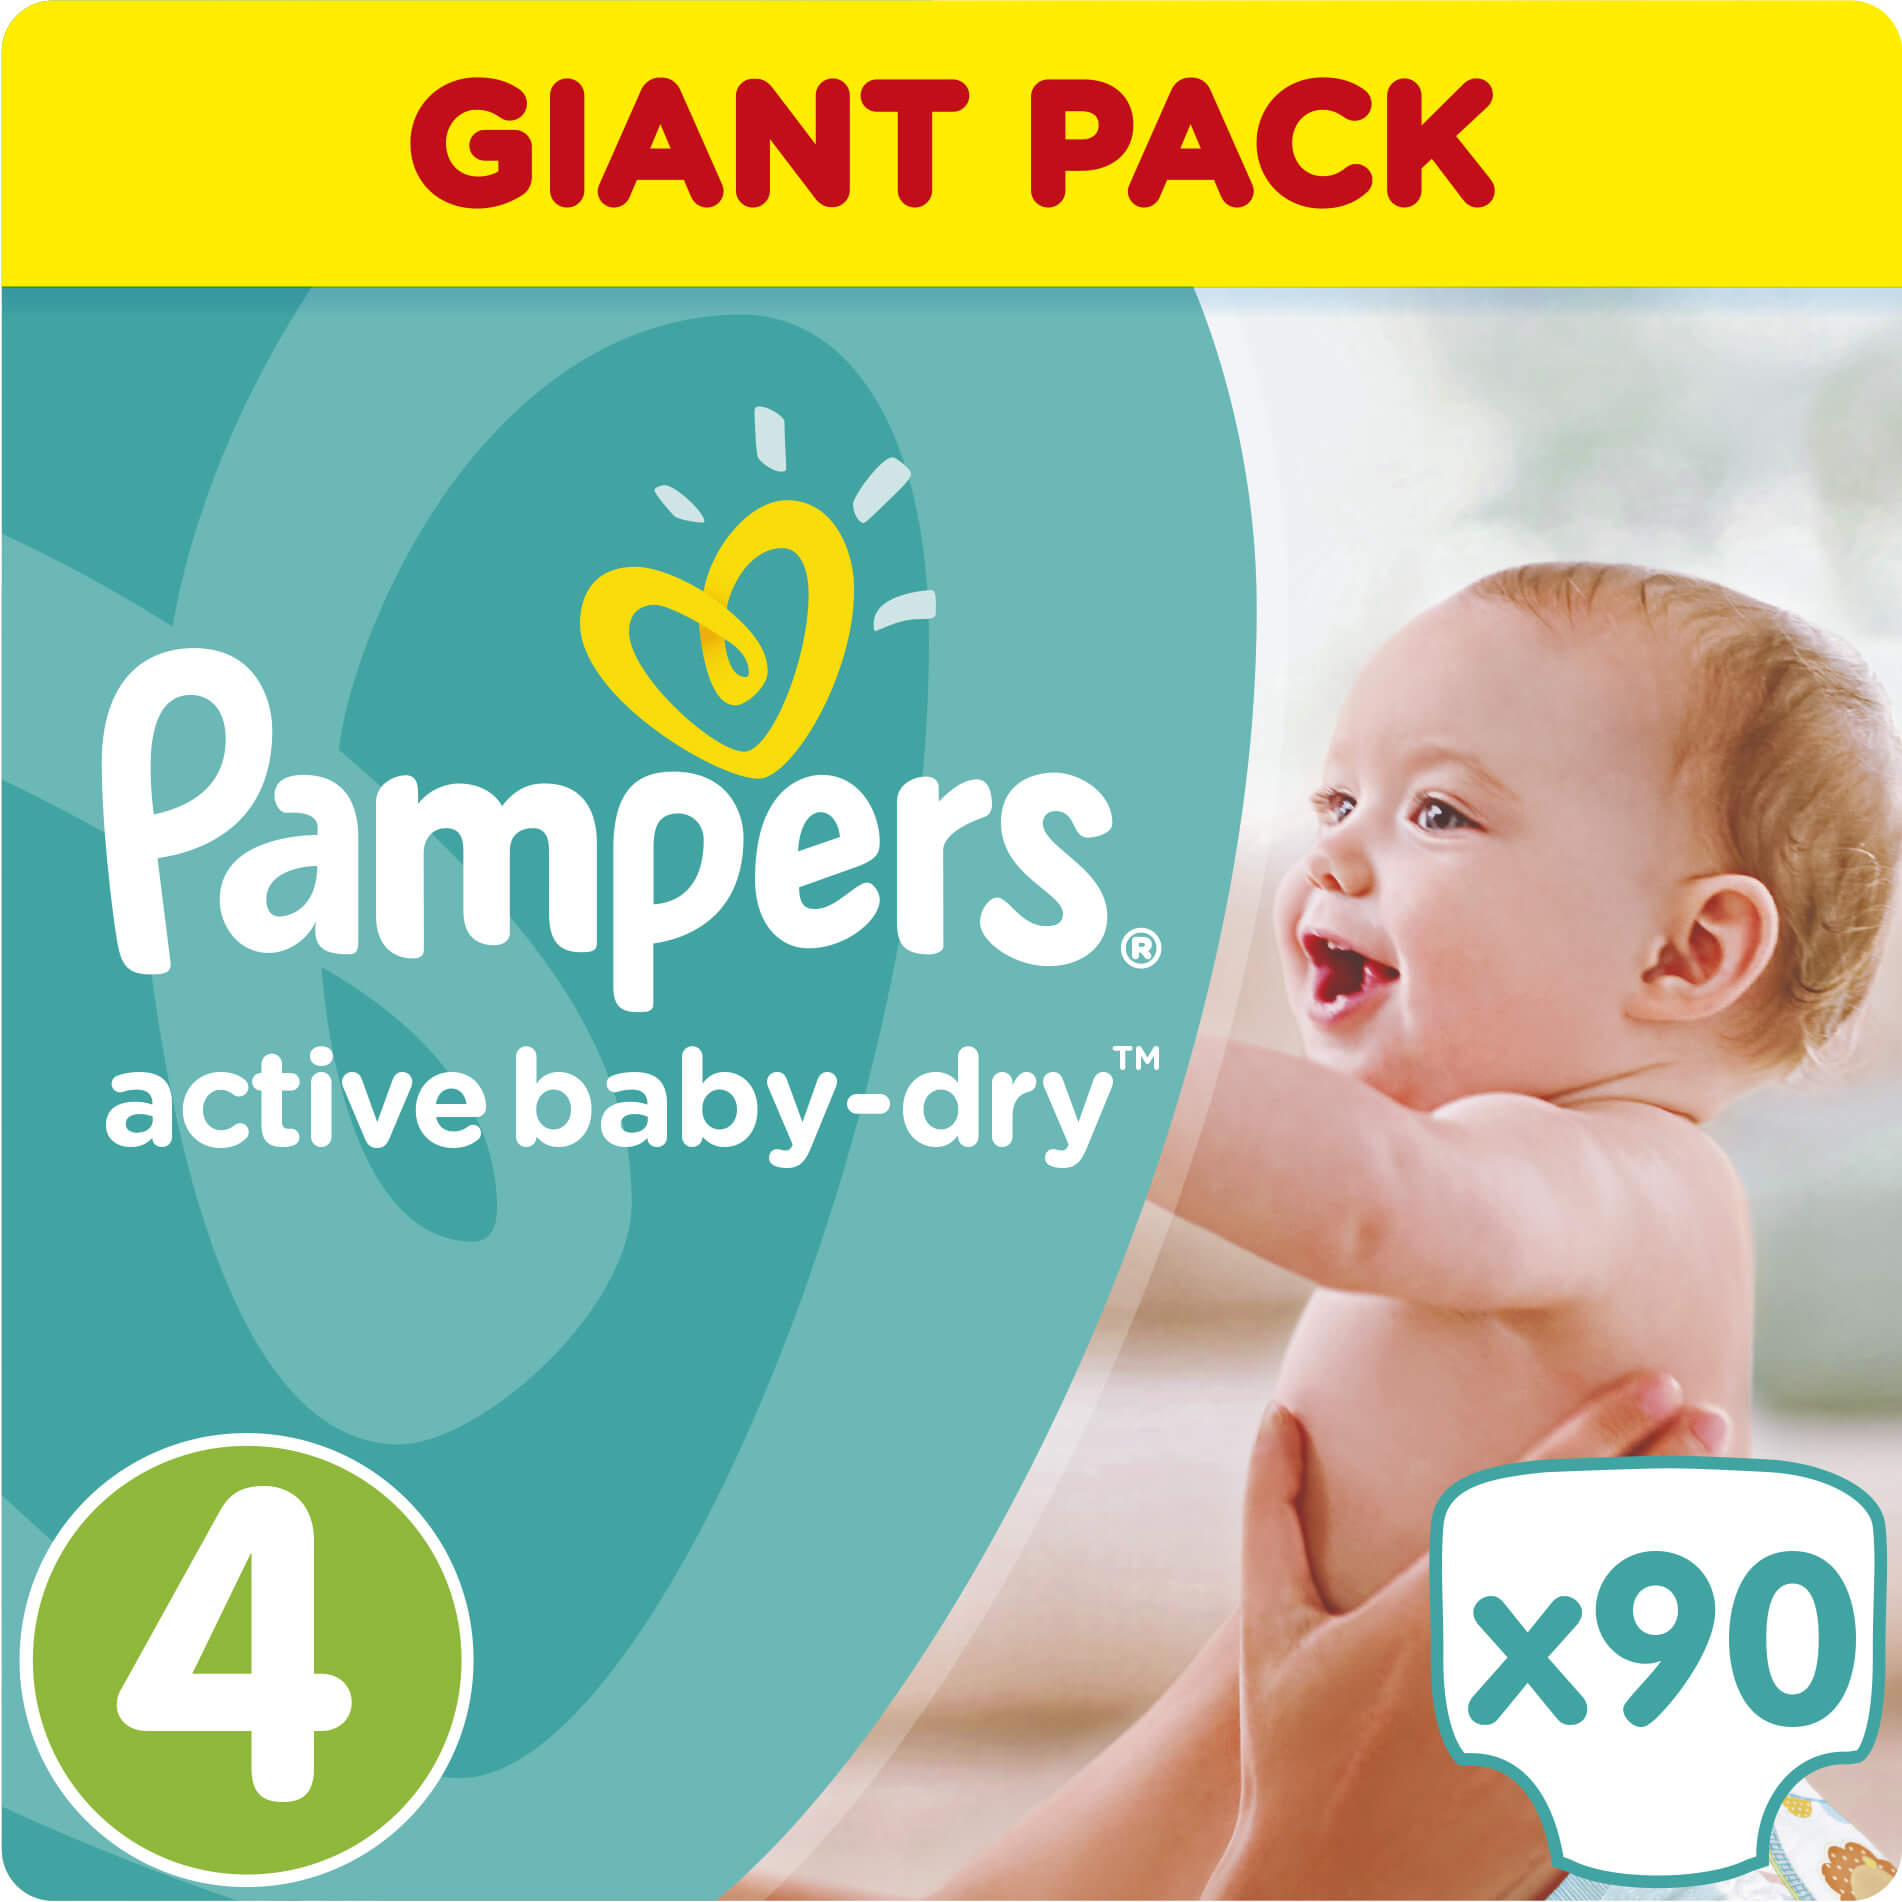 Pampers Active Baby Dry Giant Pack No4 (8-14kg) 90 πάνες μητέρα παιδί   περιποίηση για το μωρό   πάνες για το μωρό